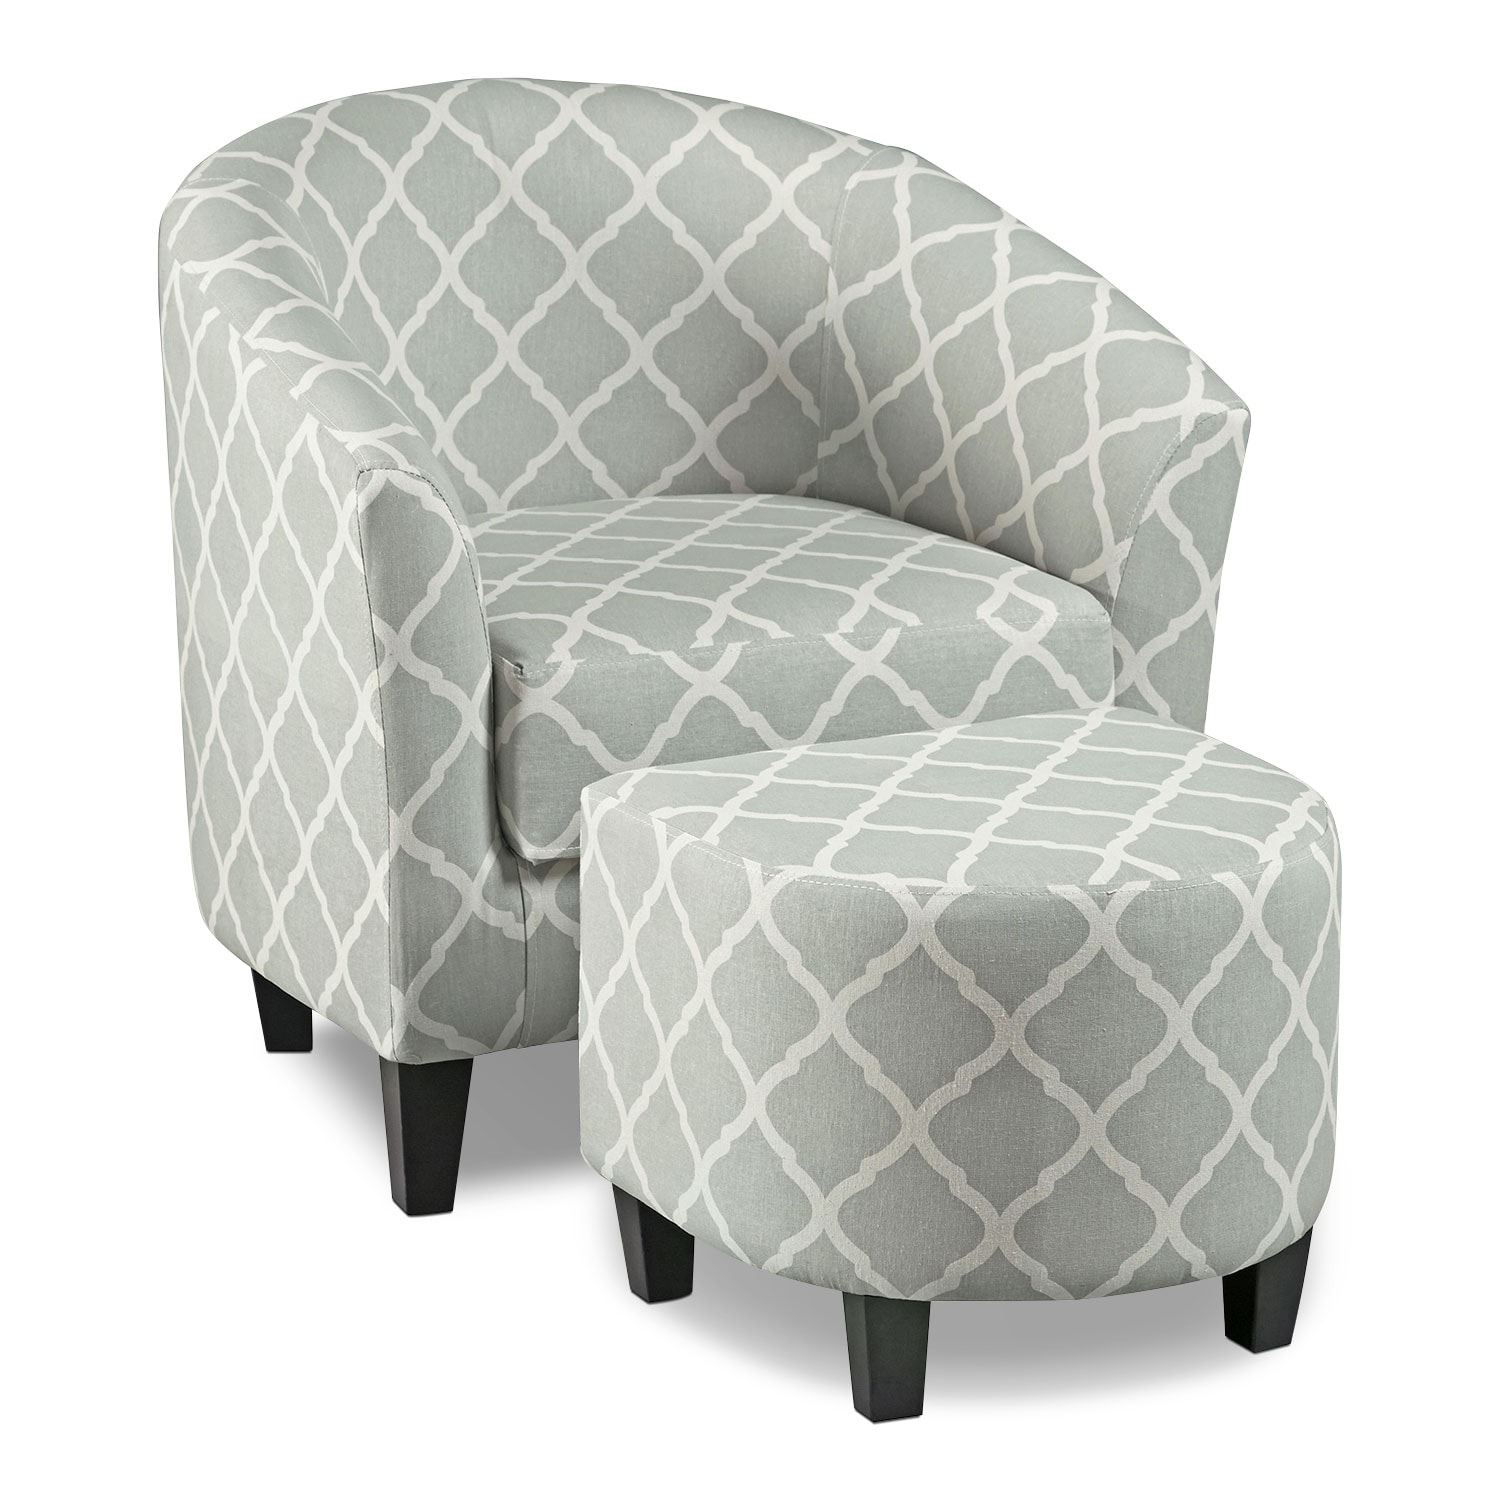 Merveilleux ... Accent Chair And Ottoman   Gray. Hover To Zoom